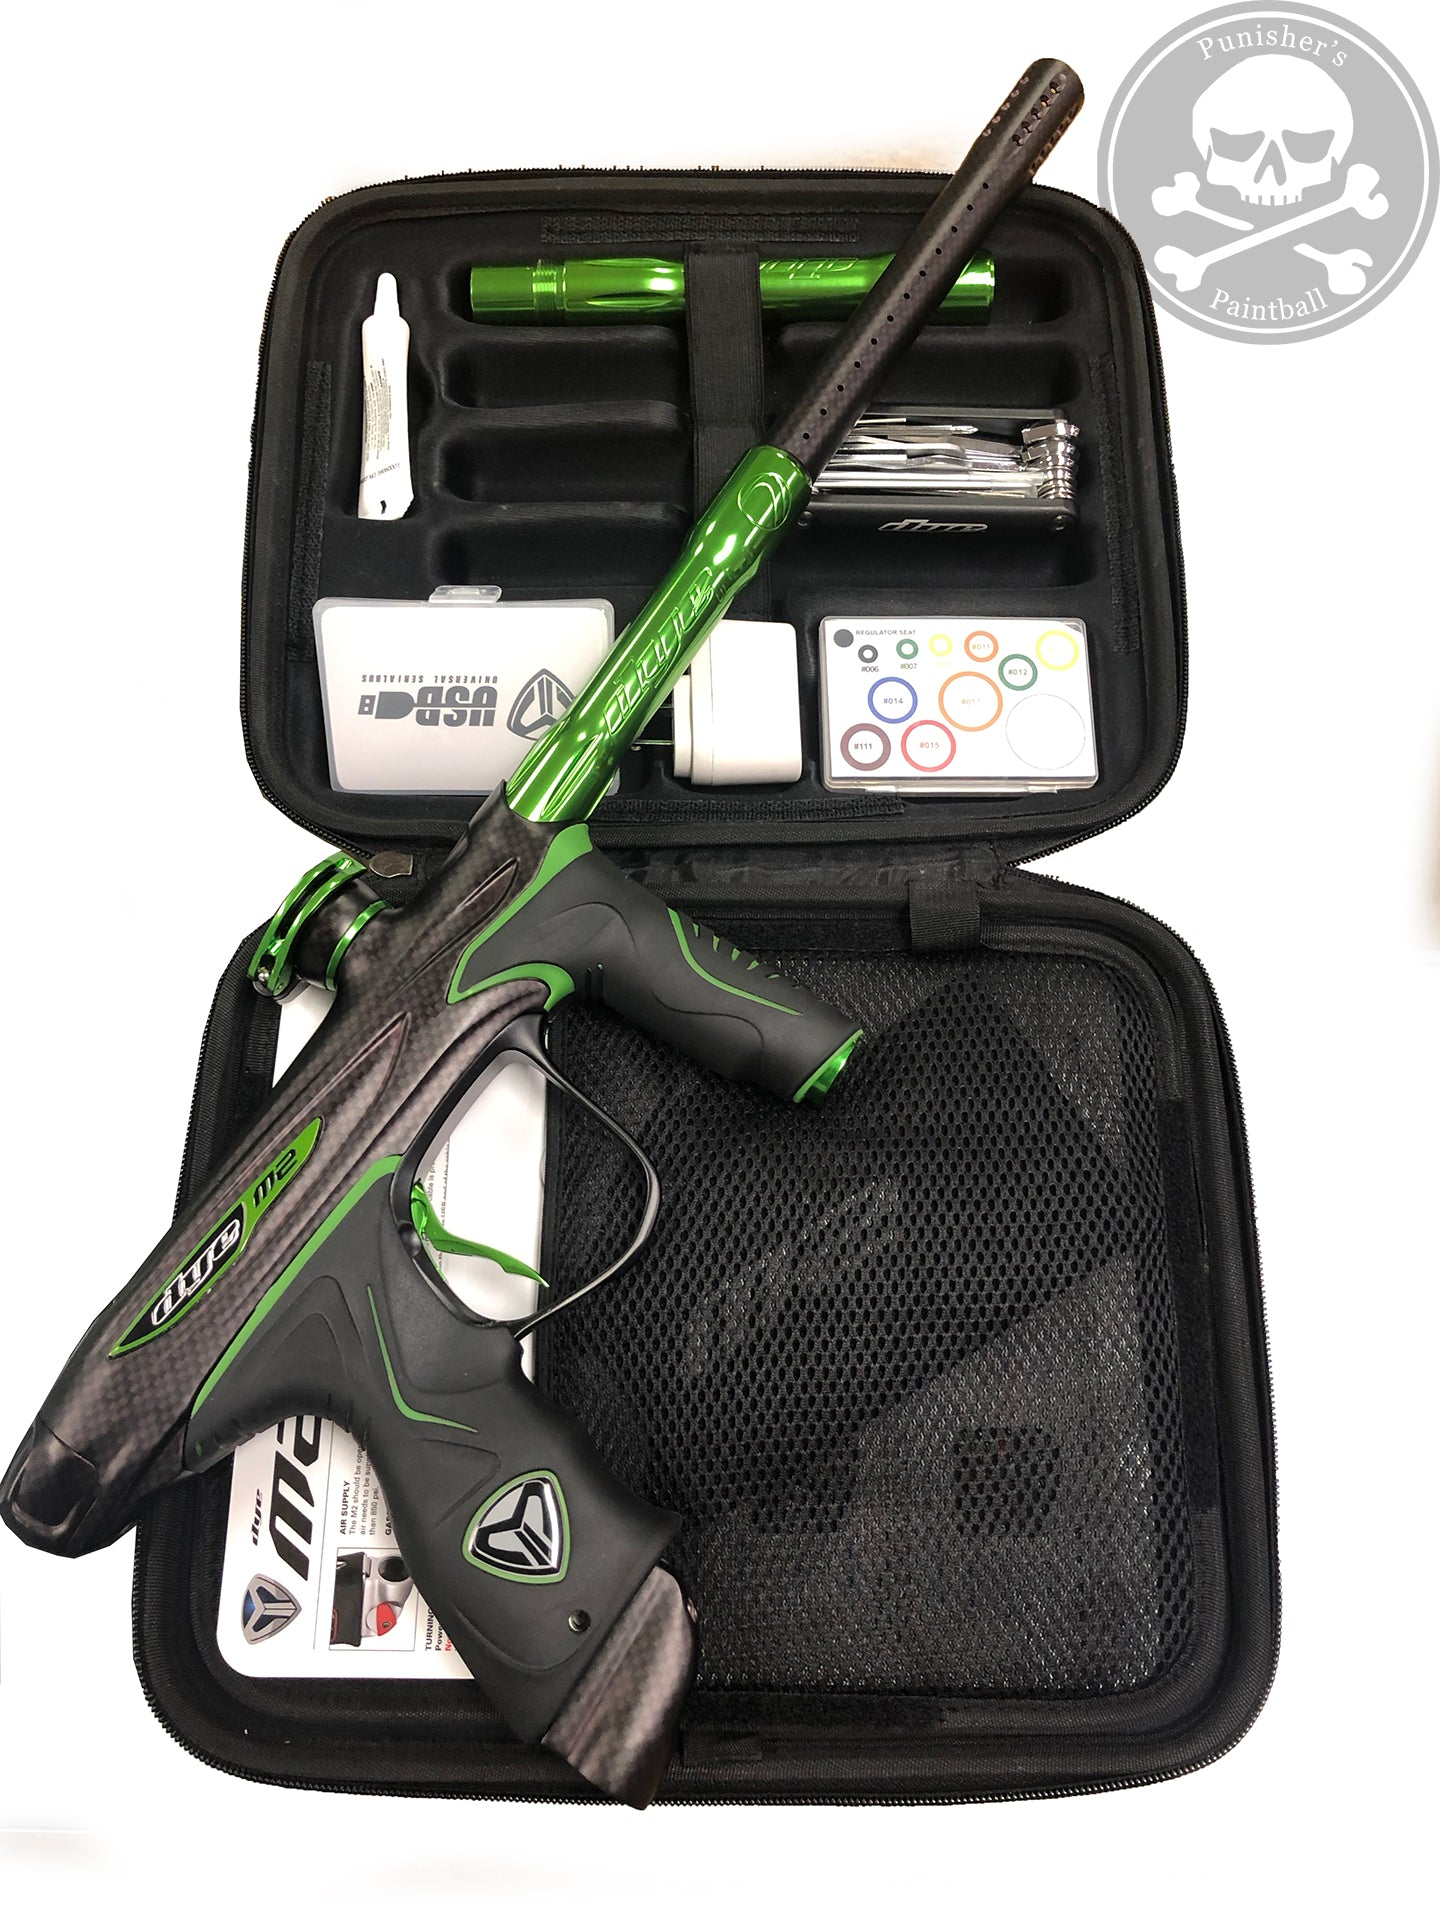 Used Dye M2 MOSAir Paintball Gun - PGA DyeCam Black/Lime